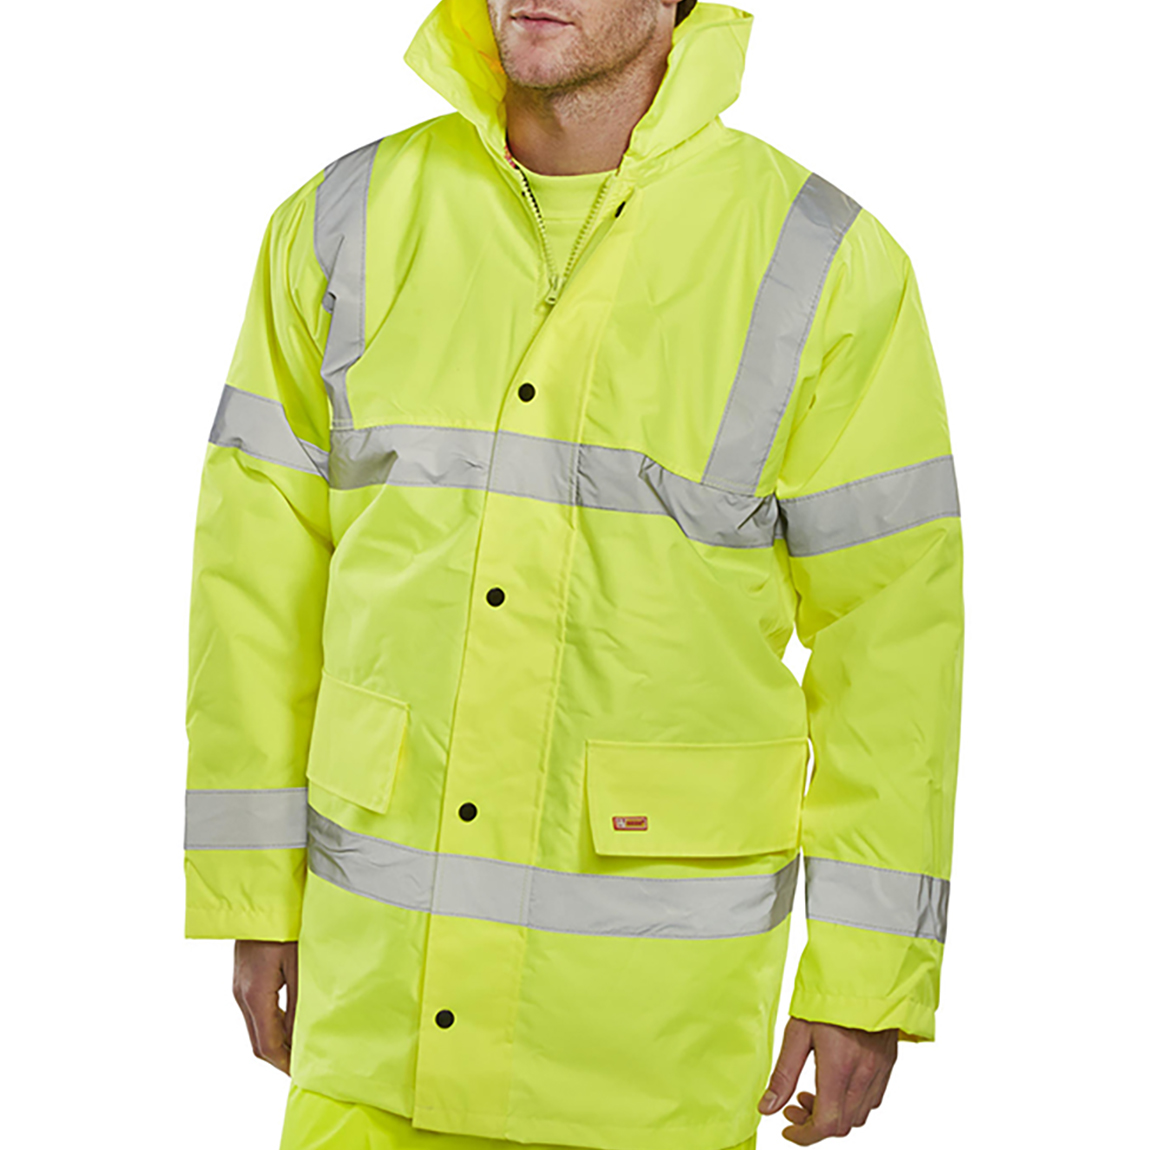 Body Protection BSeen High Visibility Constructor Jacket Large Saturn Yellow Ref CTJENGSYL *Approx 3 Day Leadtime*